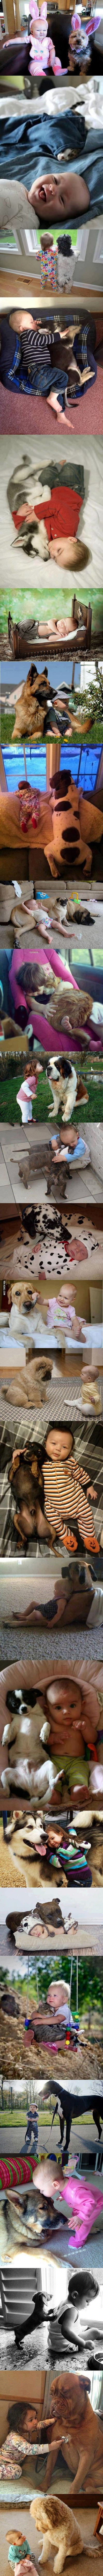 Why kids need pets.